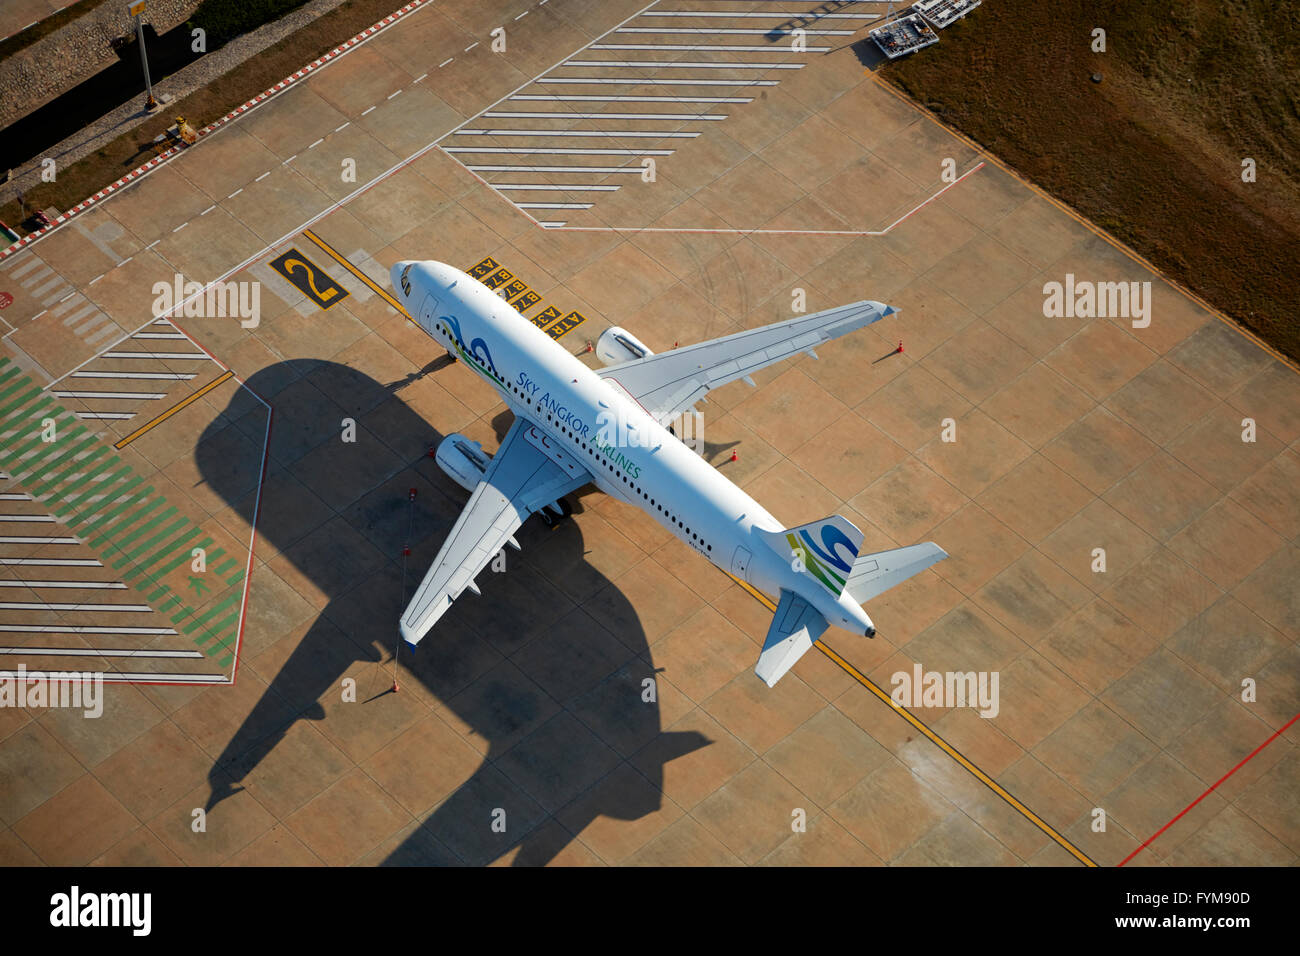 Sky Angkor Airlines Airbus A320 at Siem Reap International Airport, Siem Reap, Cambodia - aerial Stock Photo